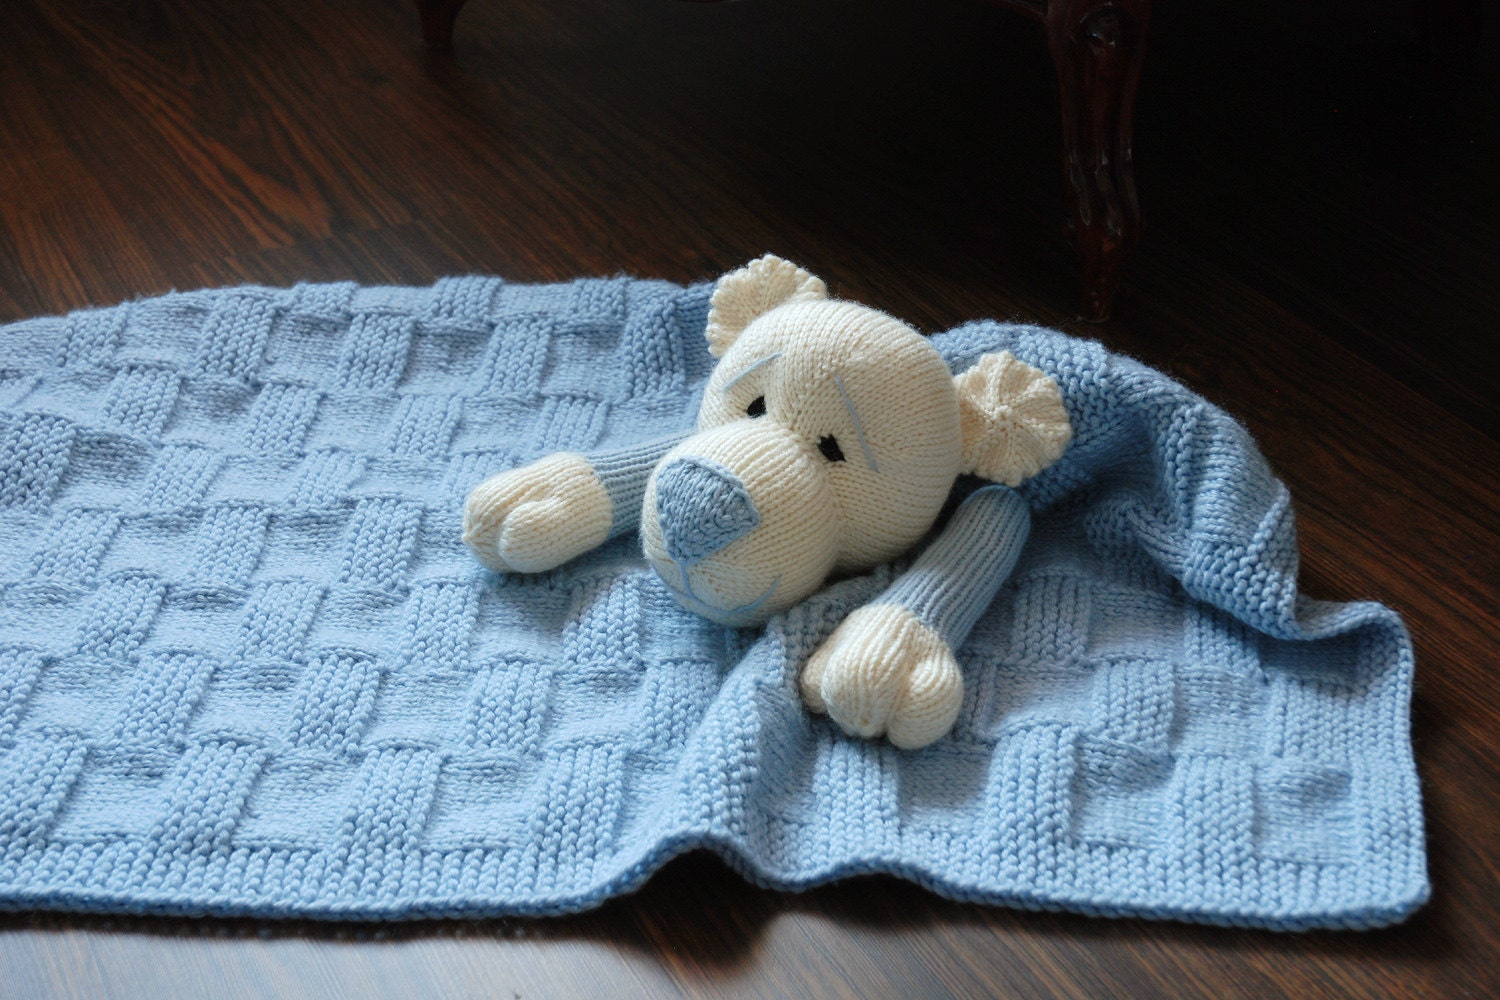 Knitting Patterns For Toys On Etsy : Baby Bear Toy Blanket knitting pattern by deniza17 on Etsy